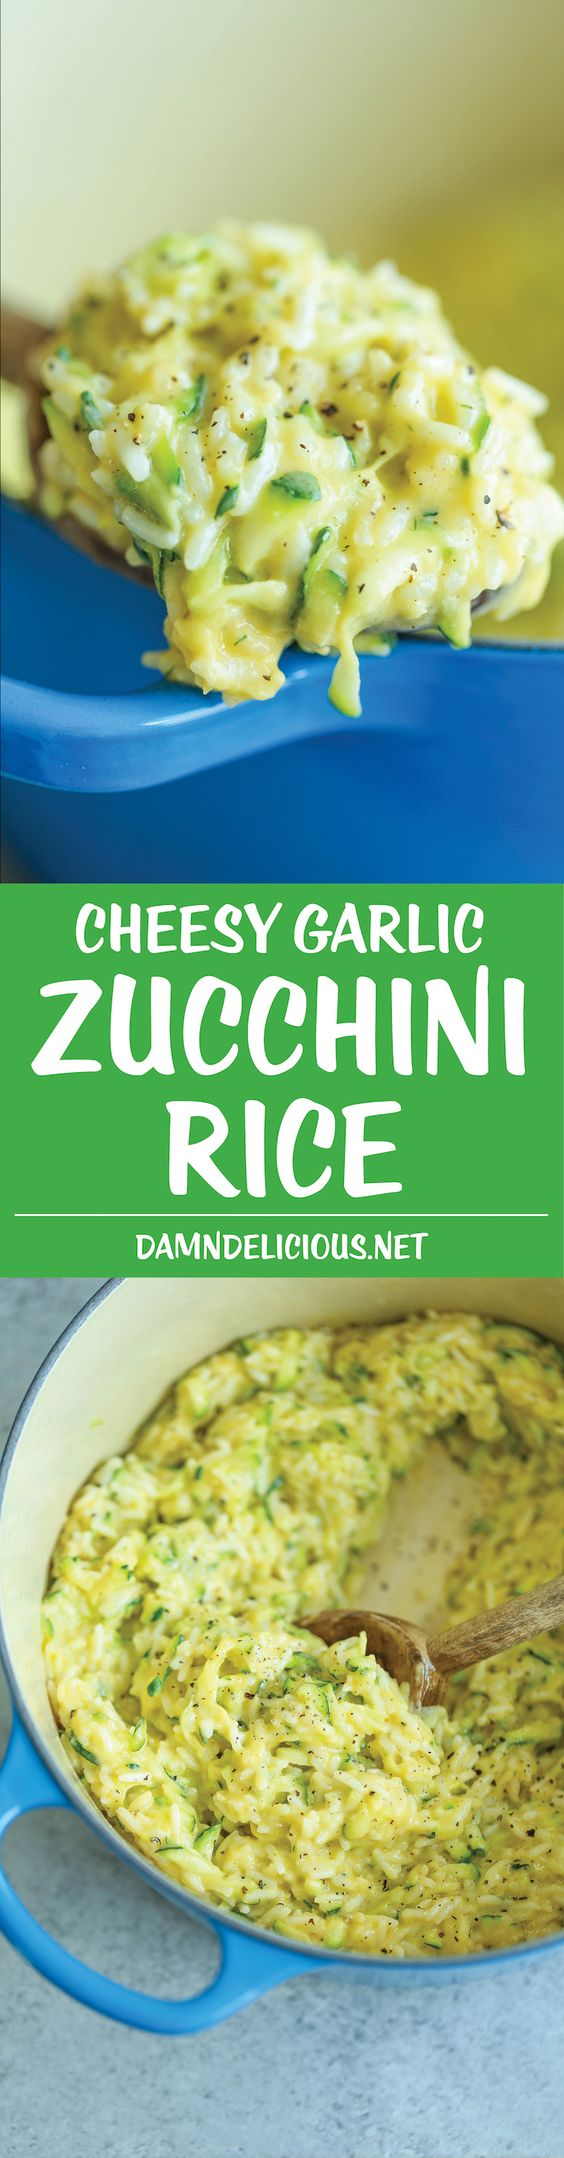 Cheesy Garlic Zucchini Rice - Made in ONE POT! So easy. So cheesy. So garlicky…